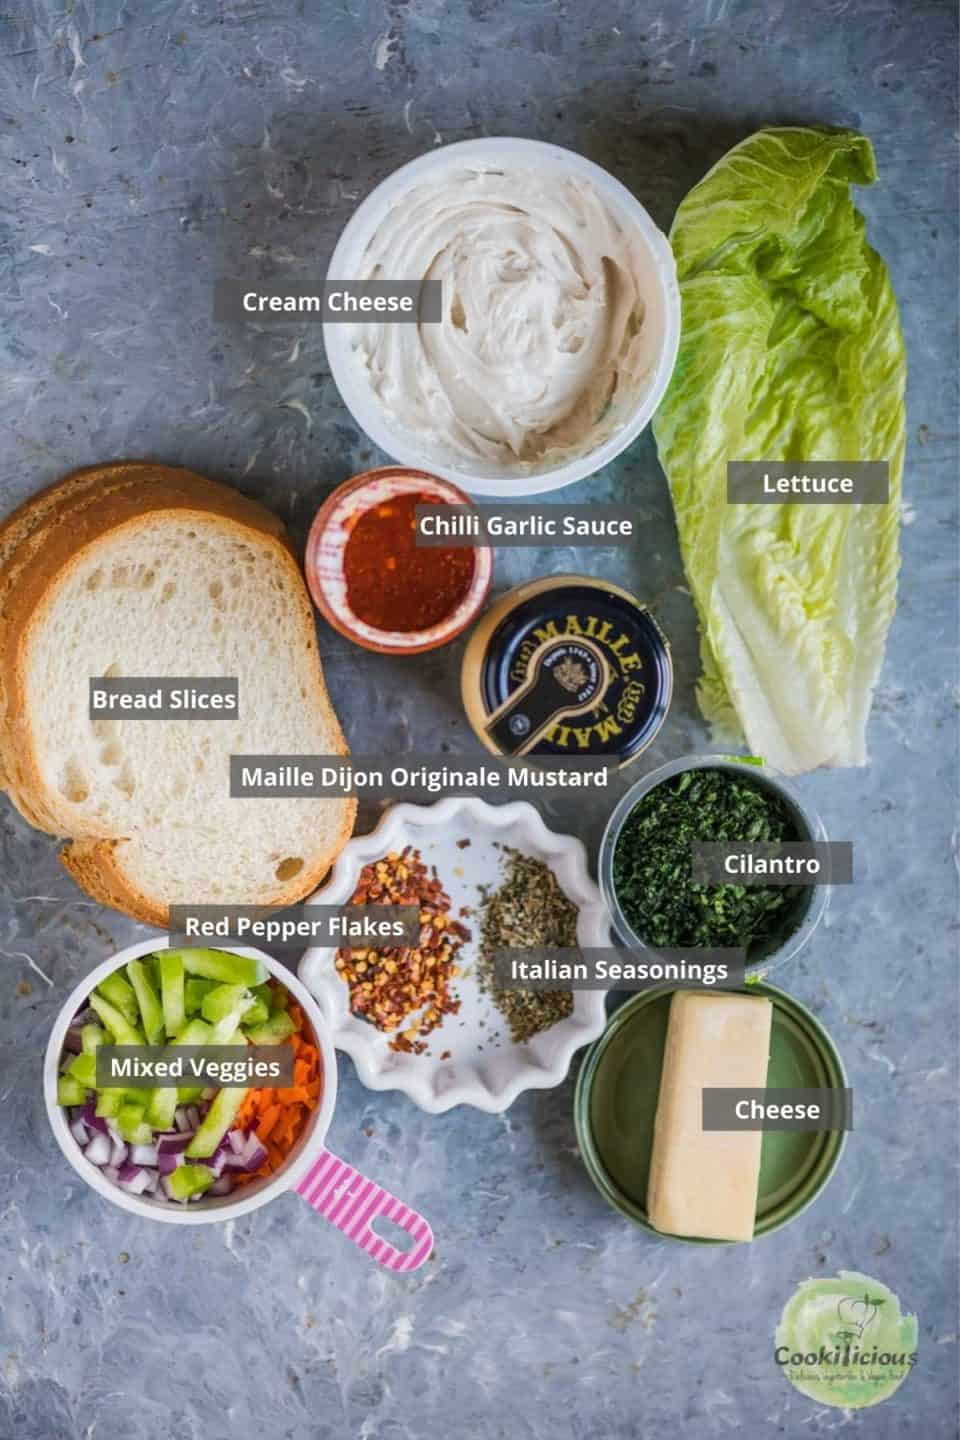 all the ingredients needed to make Veggie Sandwich placed on a table with labels on them